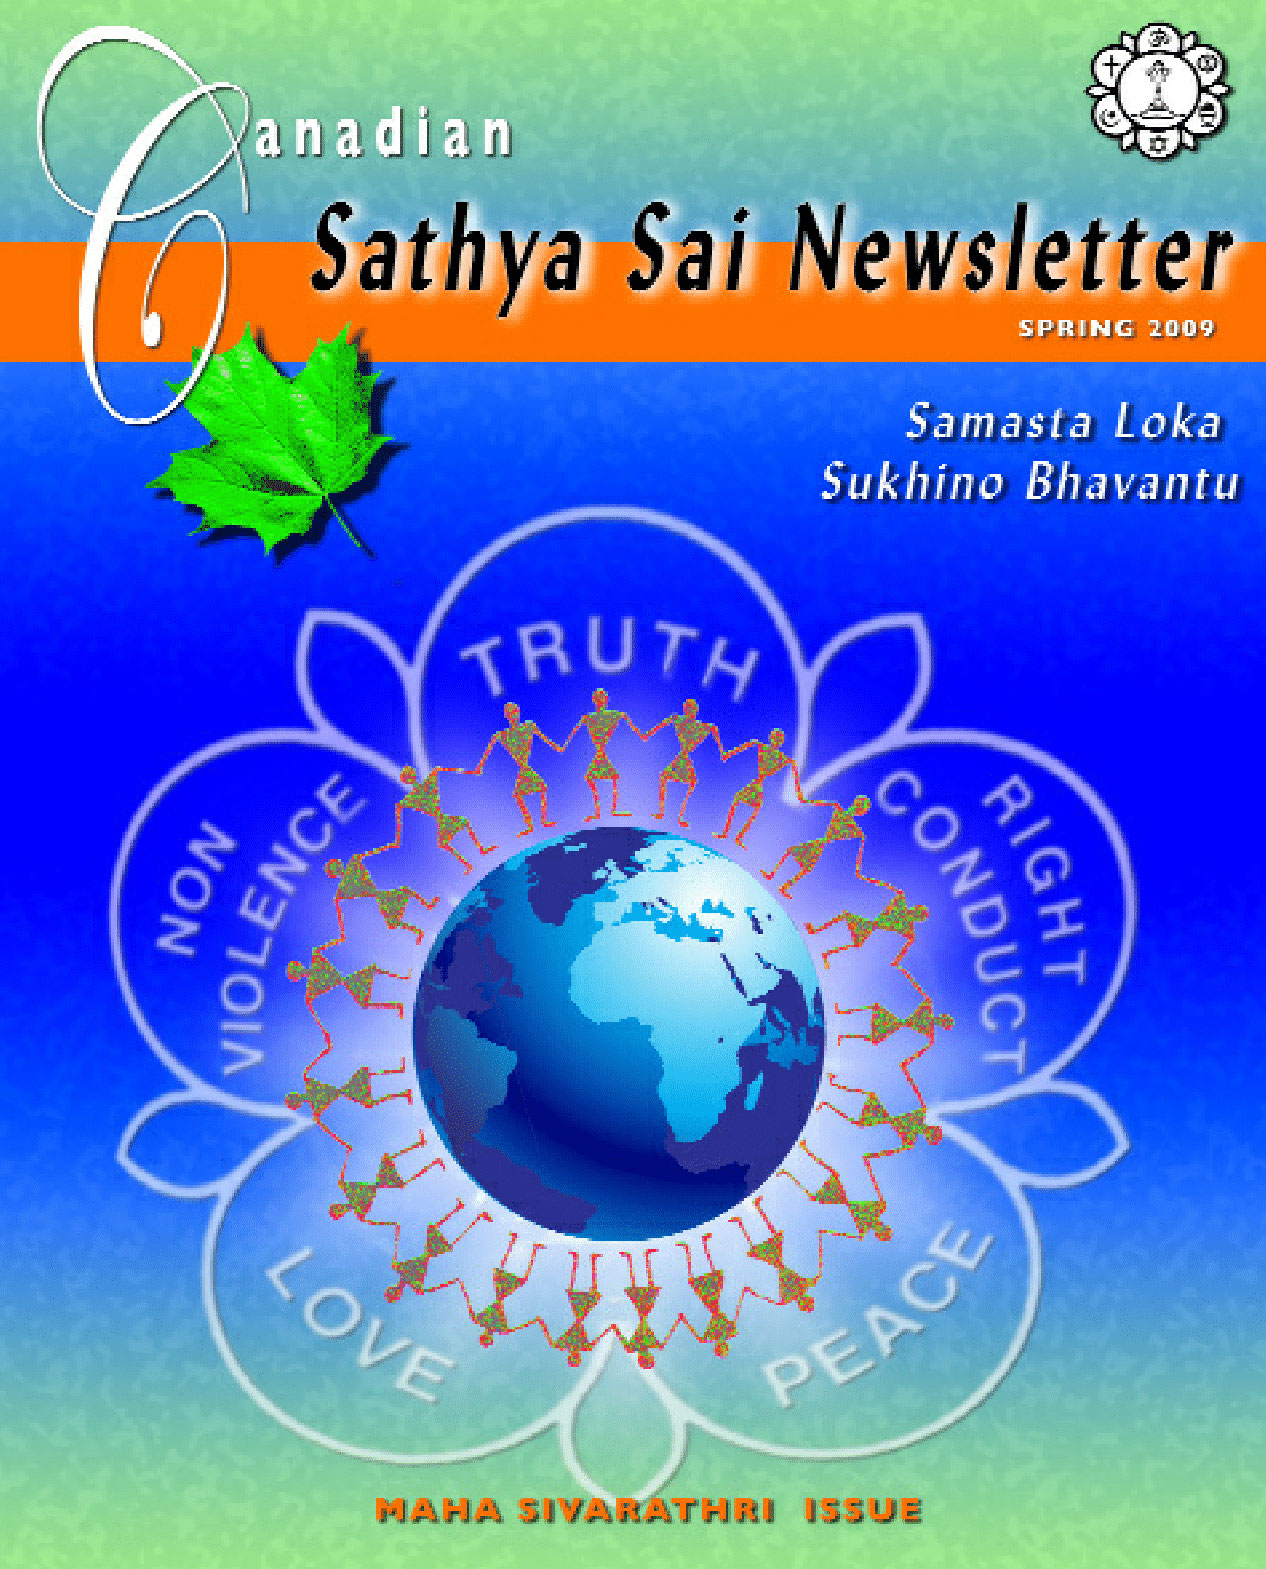 The Canadian Sathya Sai Magazine - Spring 2009